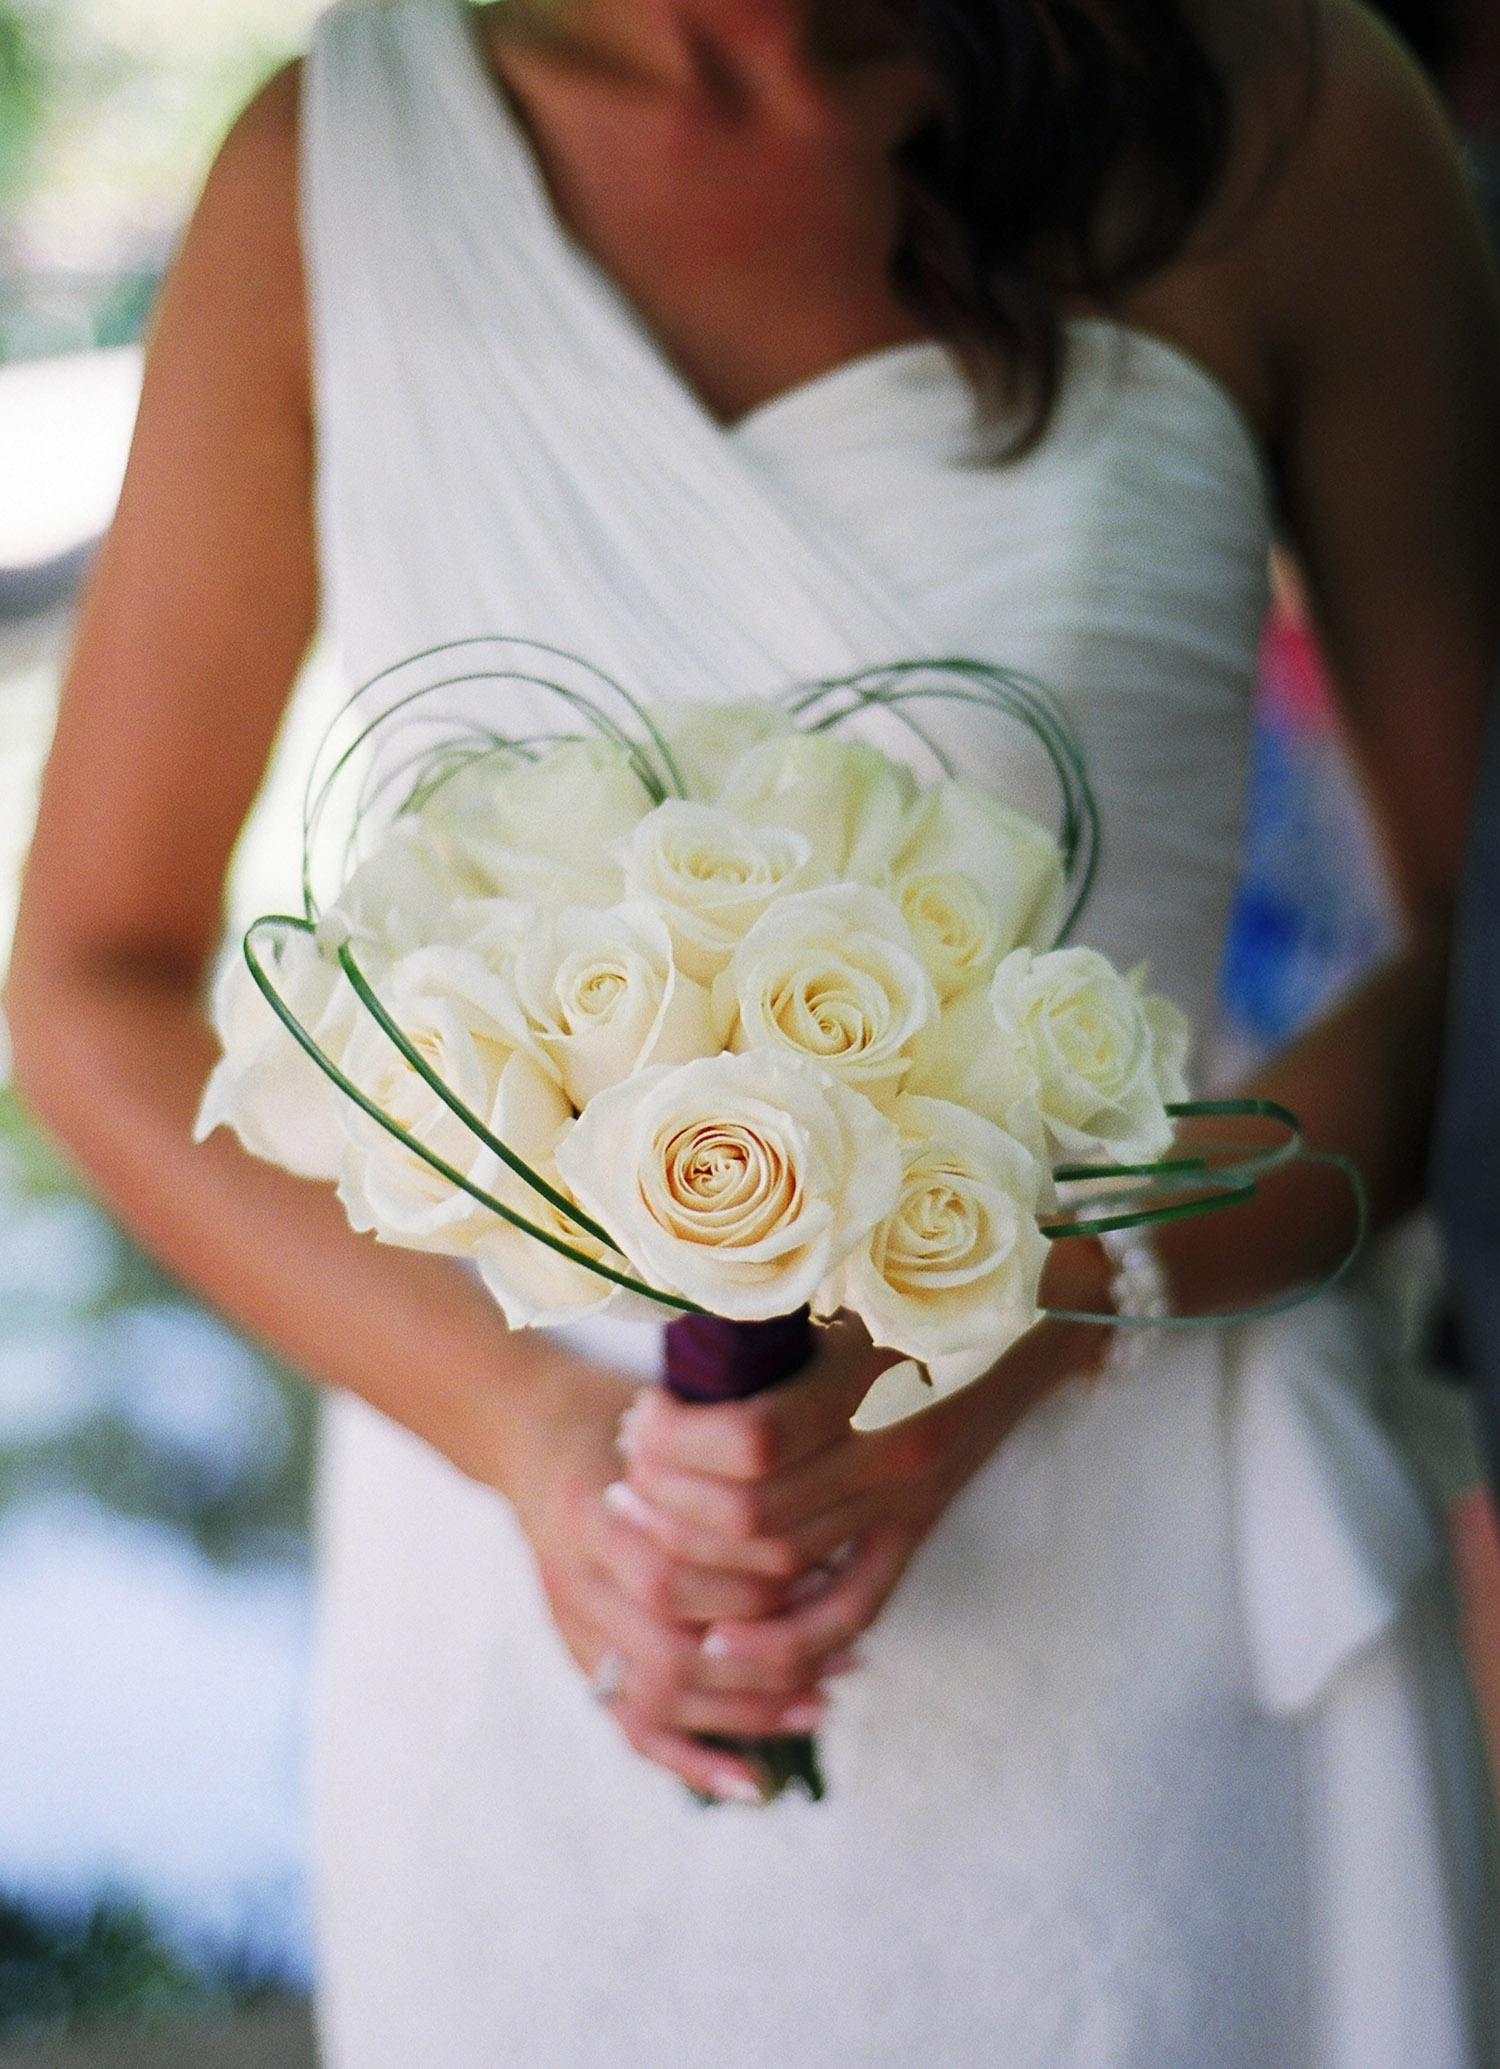 nyc conservatory garden mini wedding bouquet photo by wendy g photography